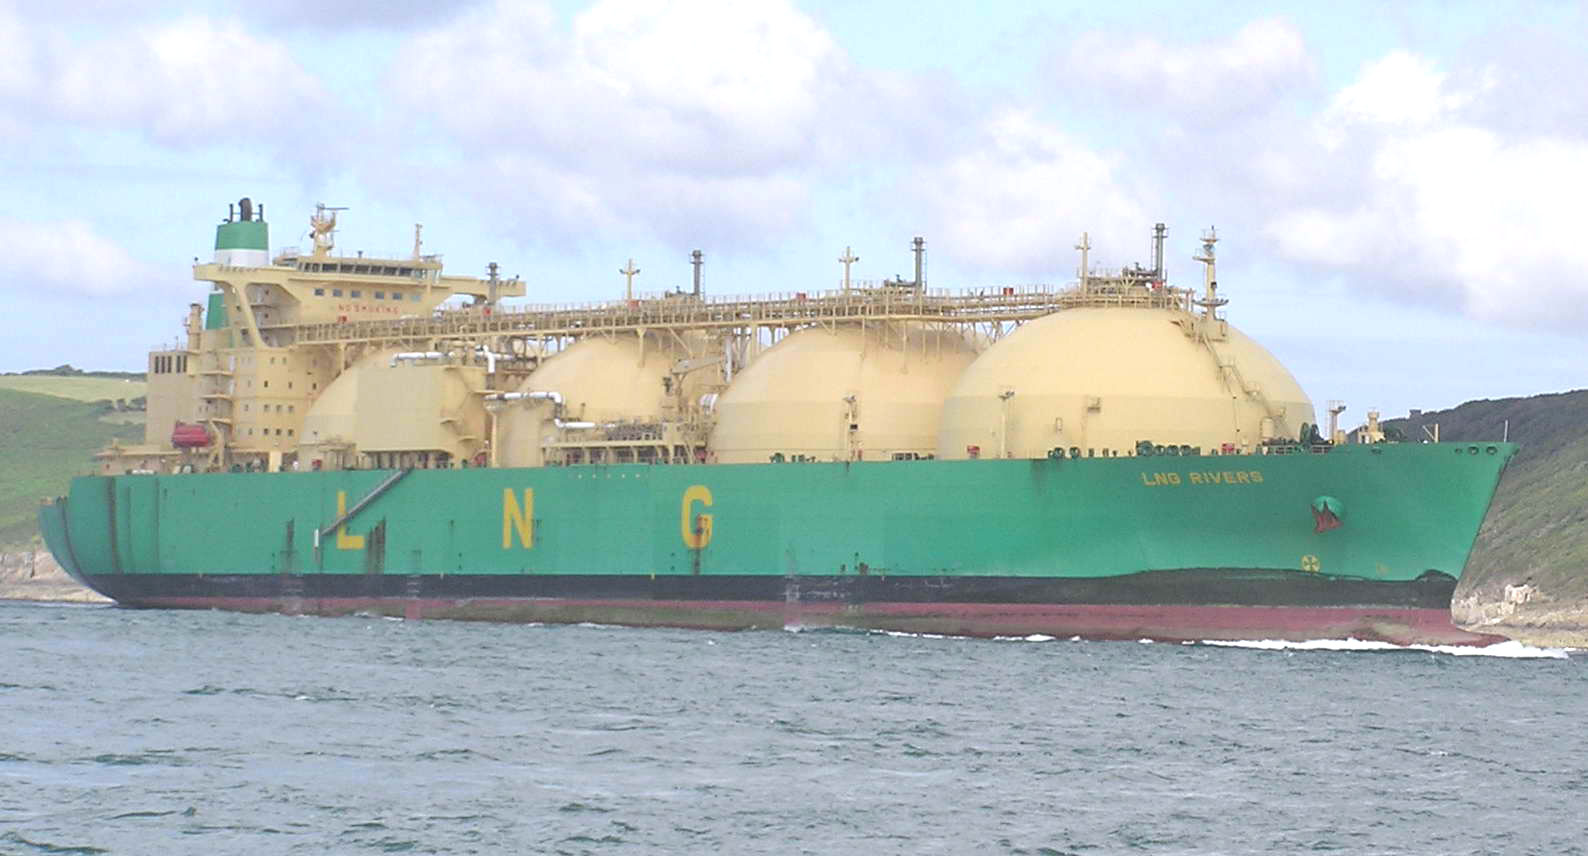 LNG Rivers, with a capacity of 135,000 cubic metres